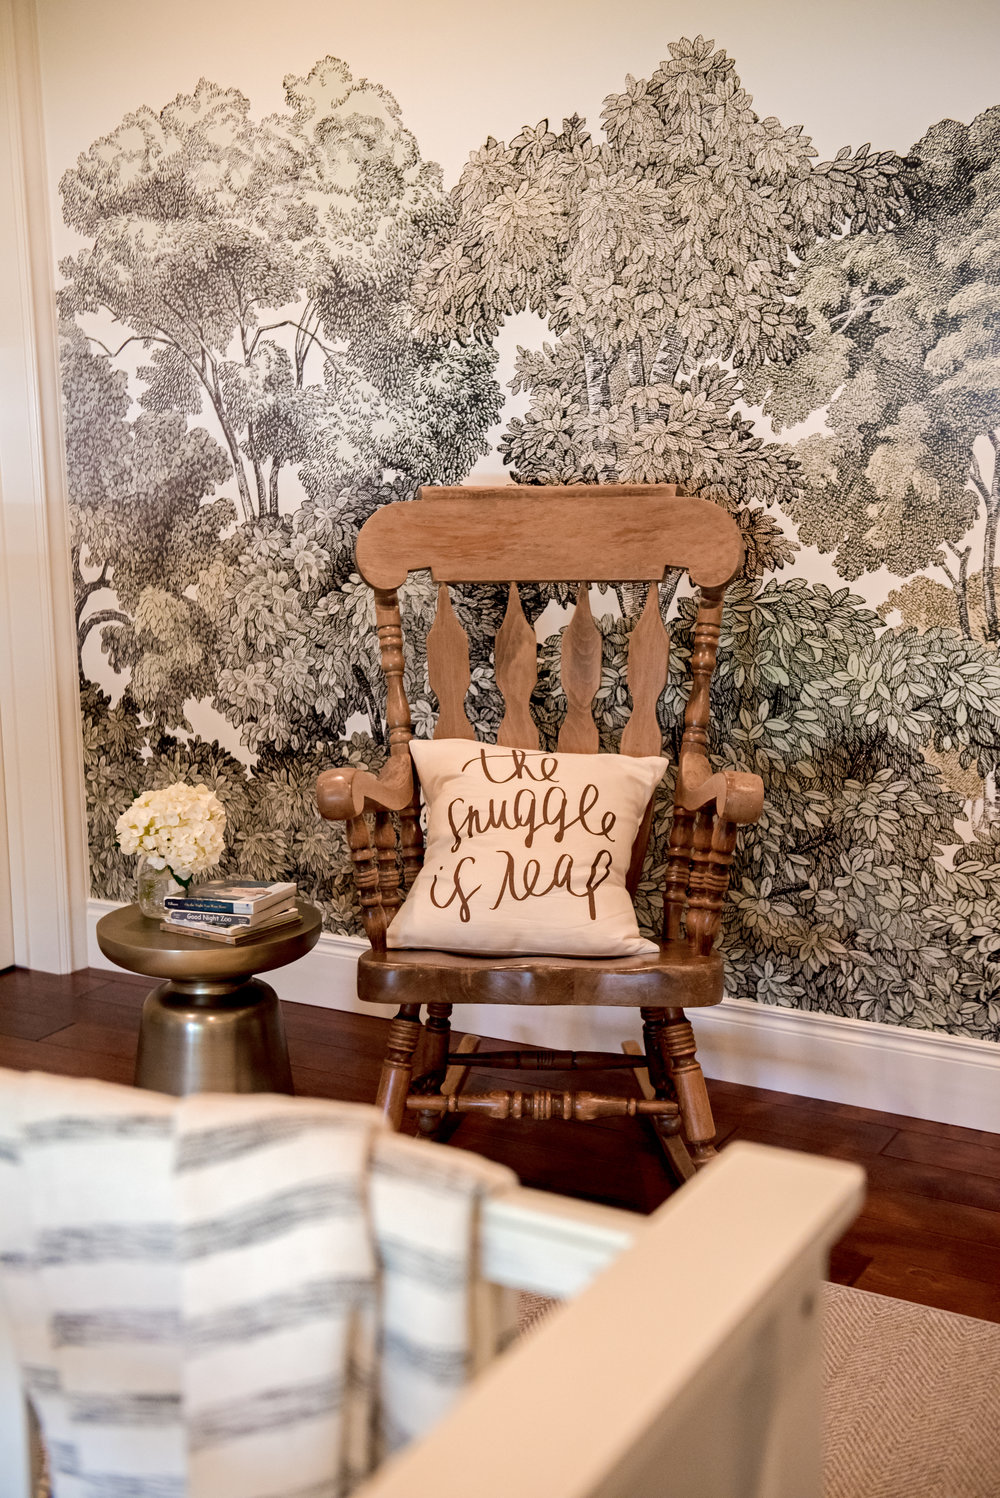 55+Nursery+Mural+Forest+Scottsdale+Rocker+Accessories+Texture+Linen+Neutral.jpg